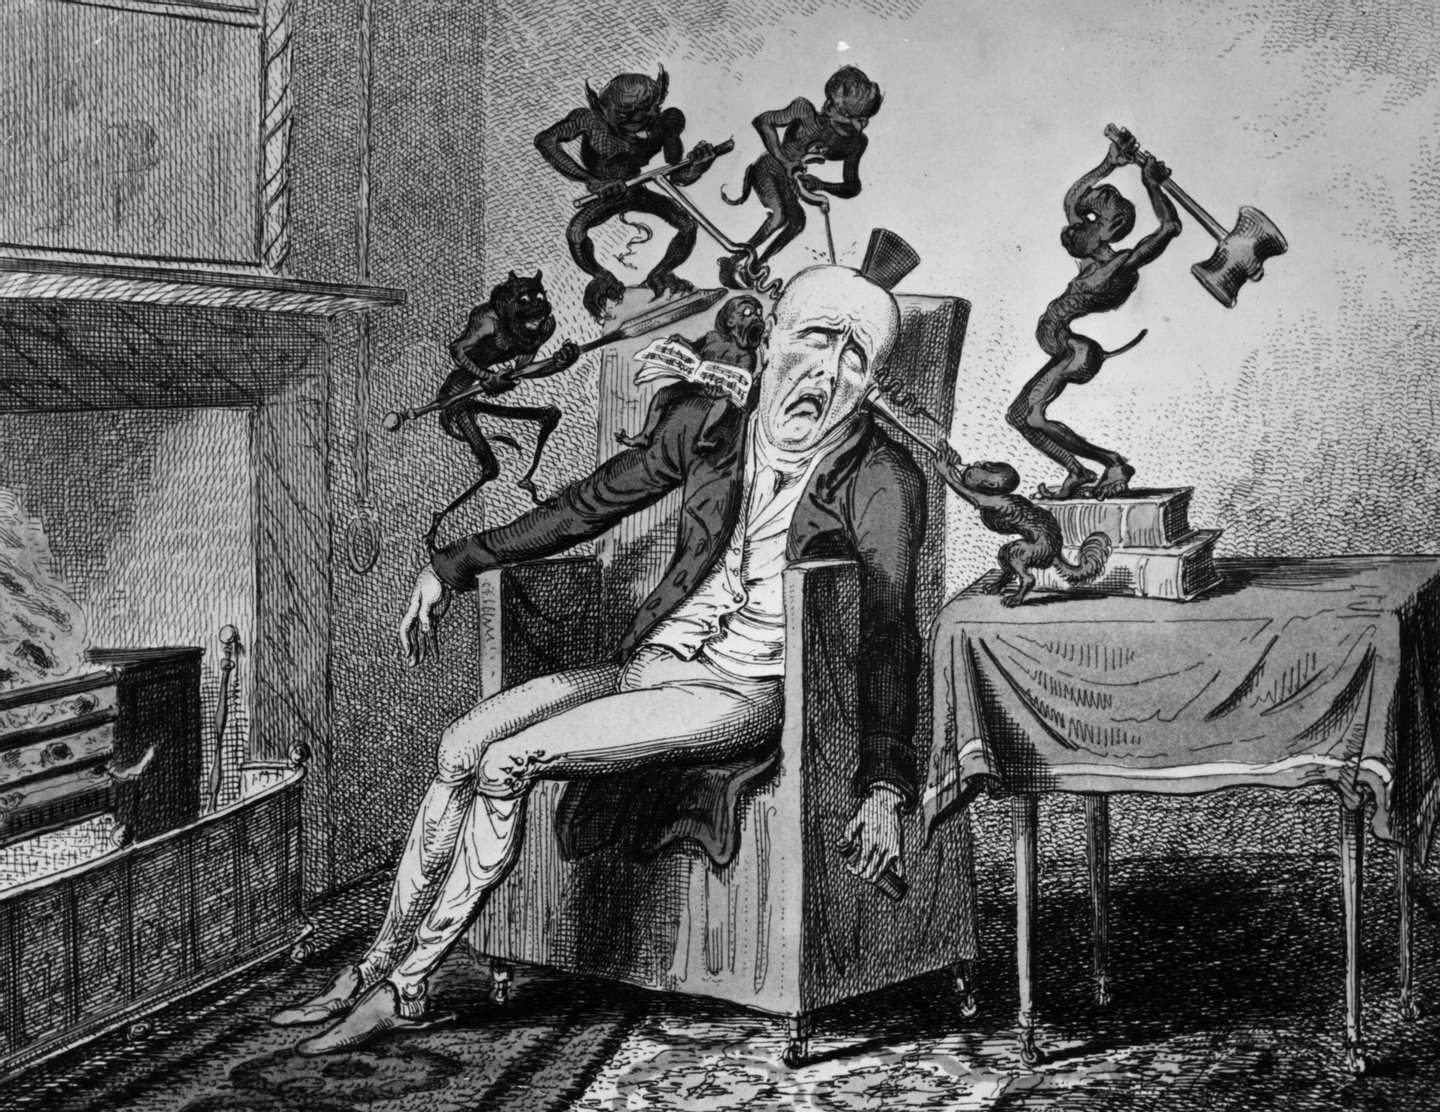 1819:  A man suffering from a headache is tormented by a horde of little demons.  'Headache' by Cruikshank.  (Photo by Hulton Archive/Getty Images)